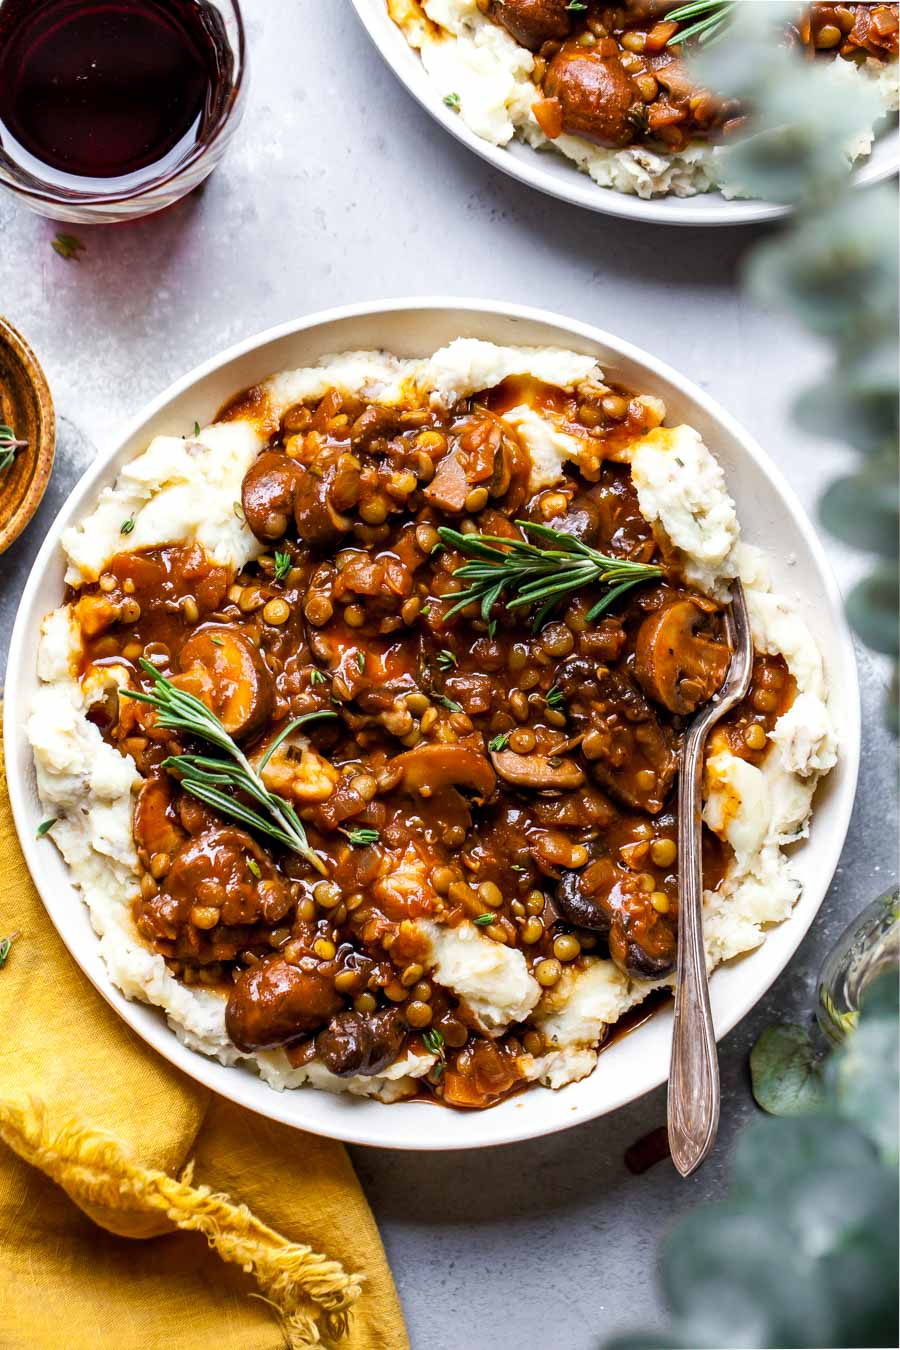 Stewed Lentil and Mushroom Gravy Over Parsnip and Potato Mash